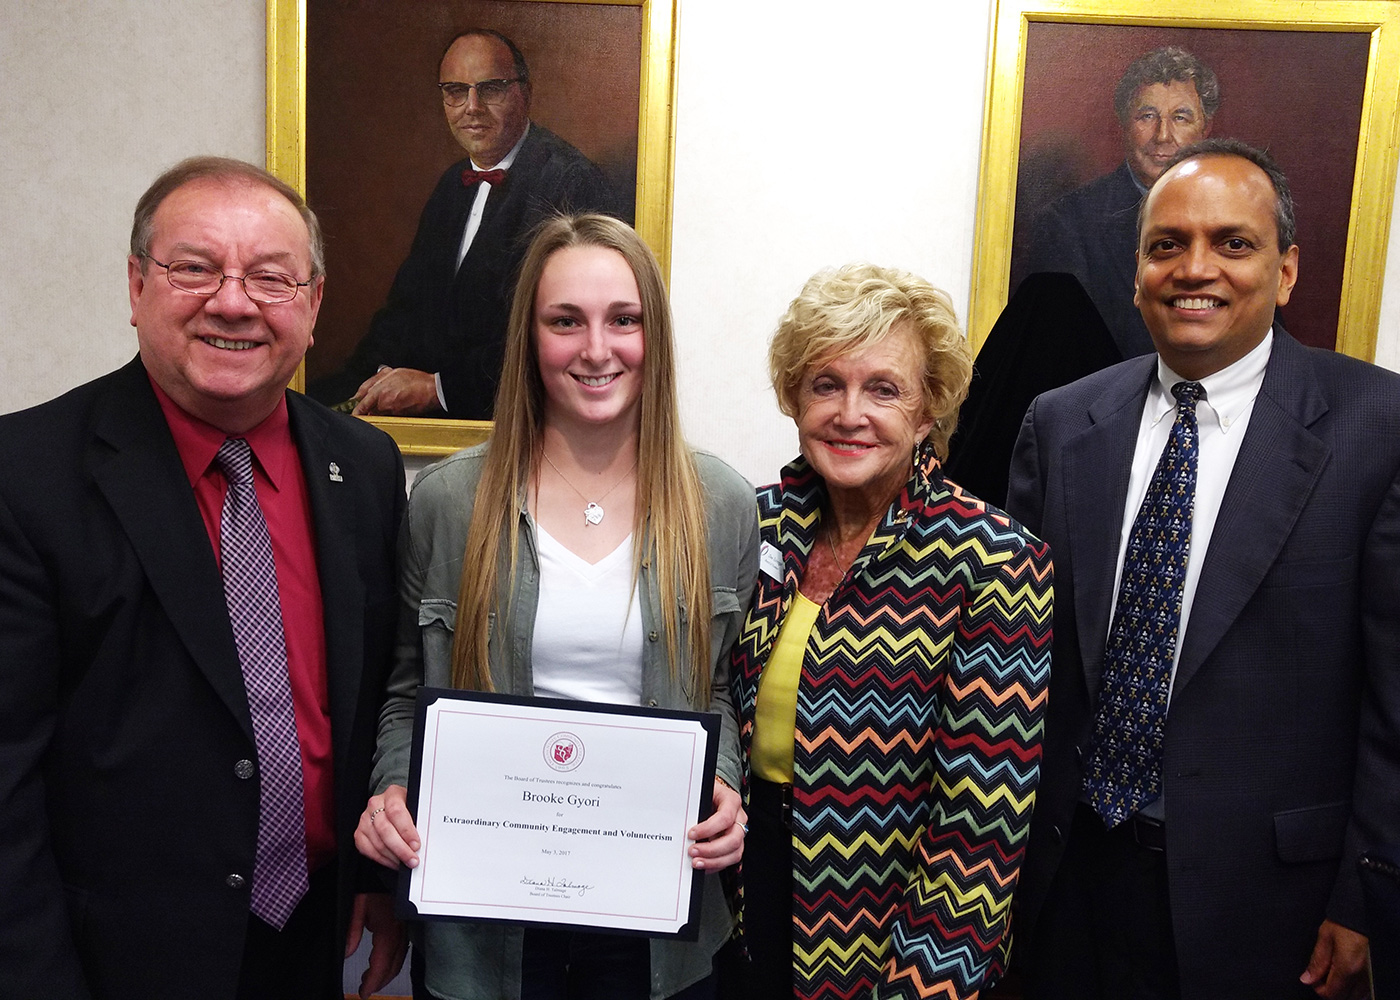 Student Life Committee Recognizes Brooke Gyori